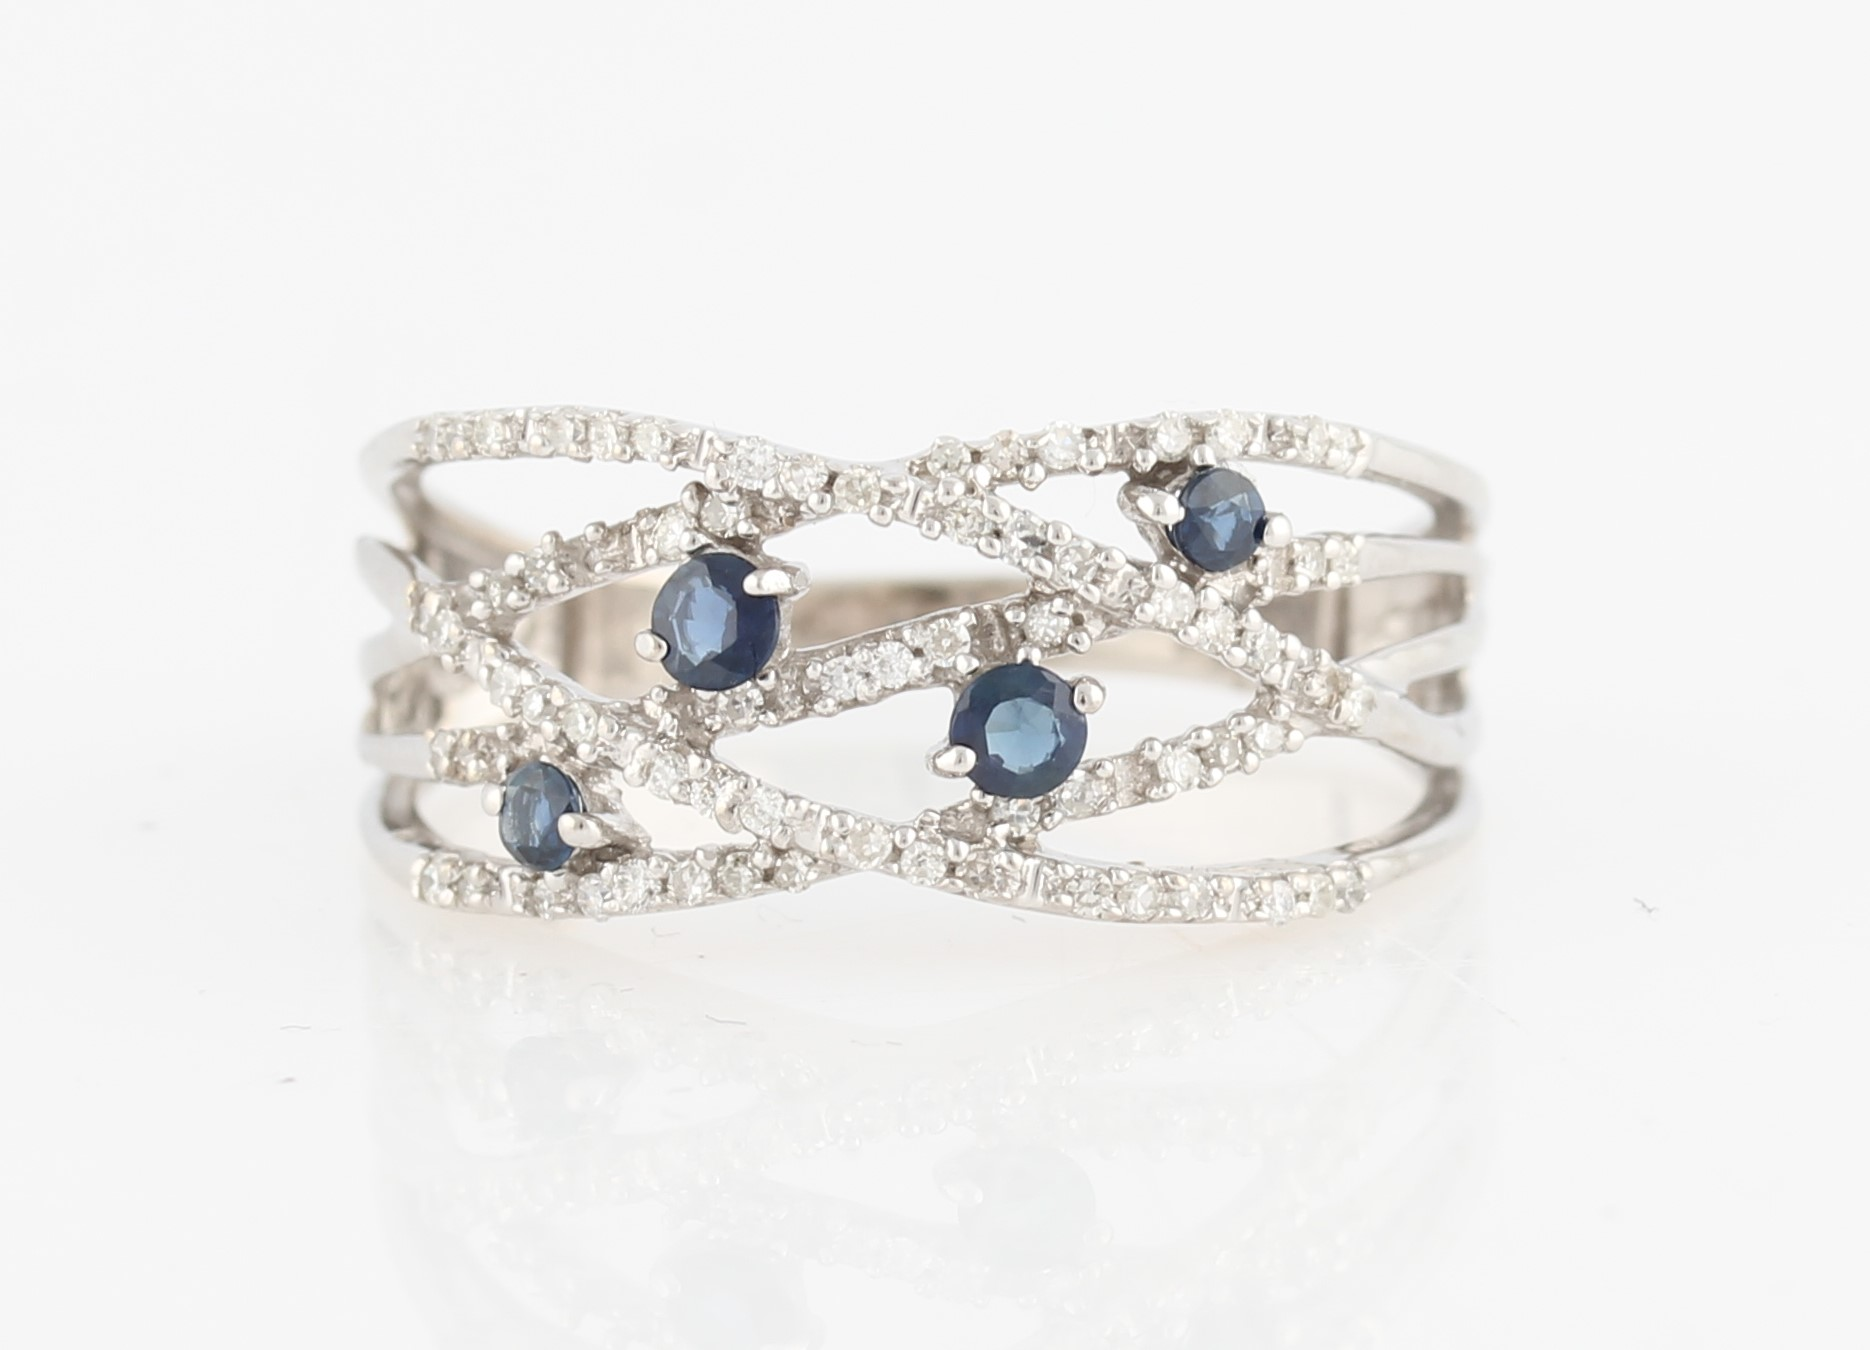 Lot 51 - A sapphire and diamond band ring, the open metalwork cross over design set with eight-cut diamond